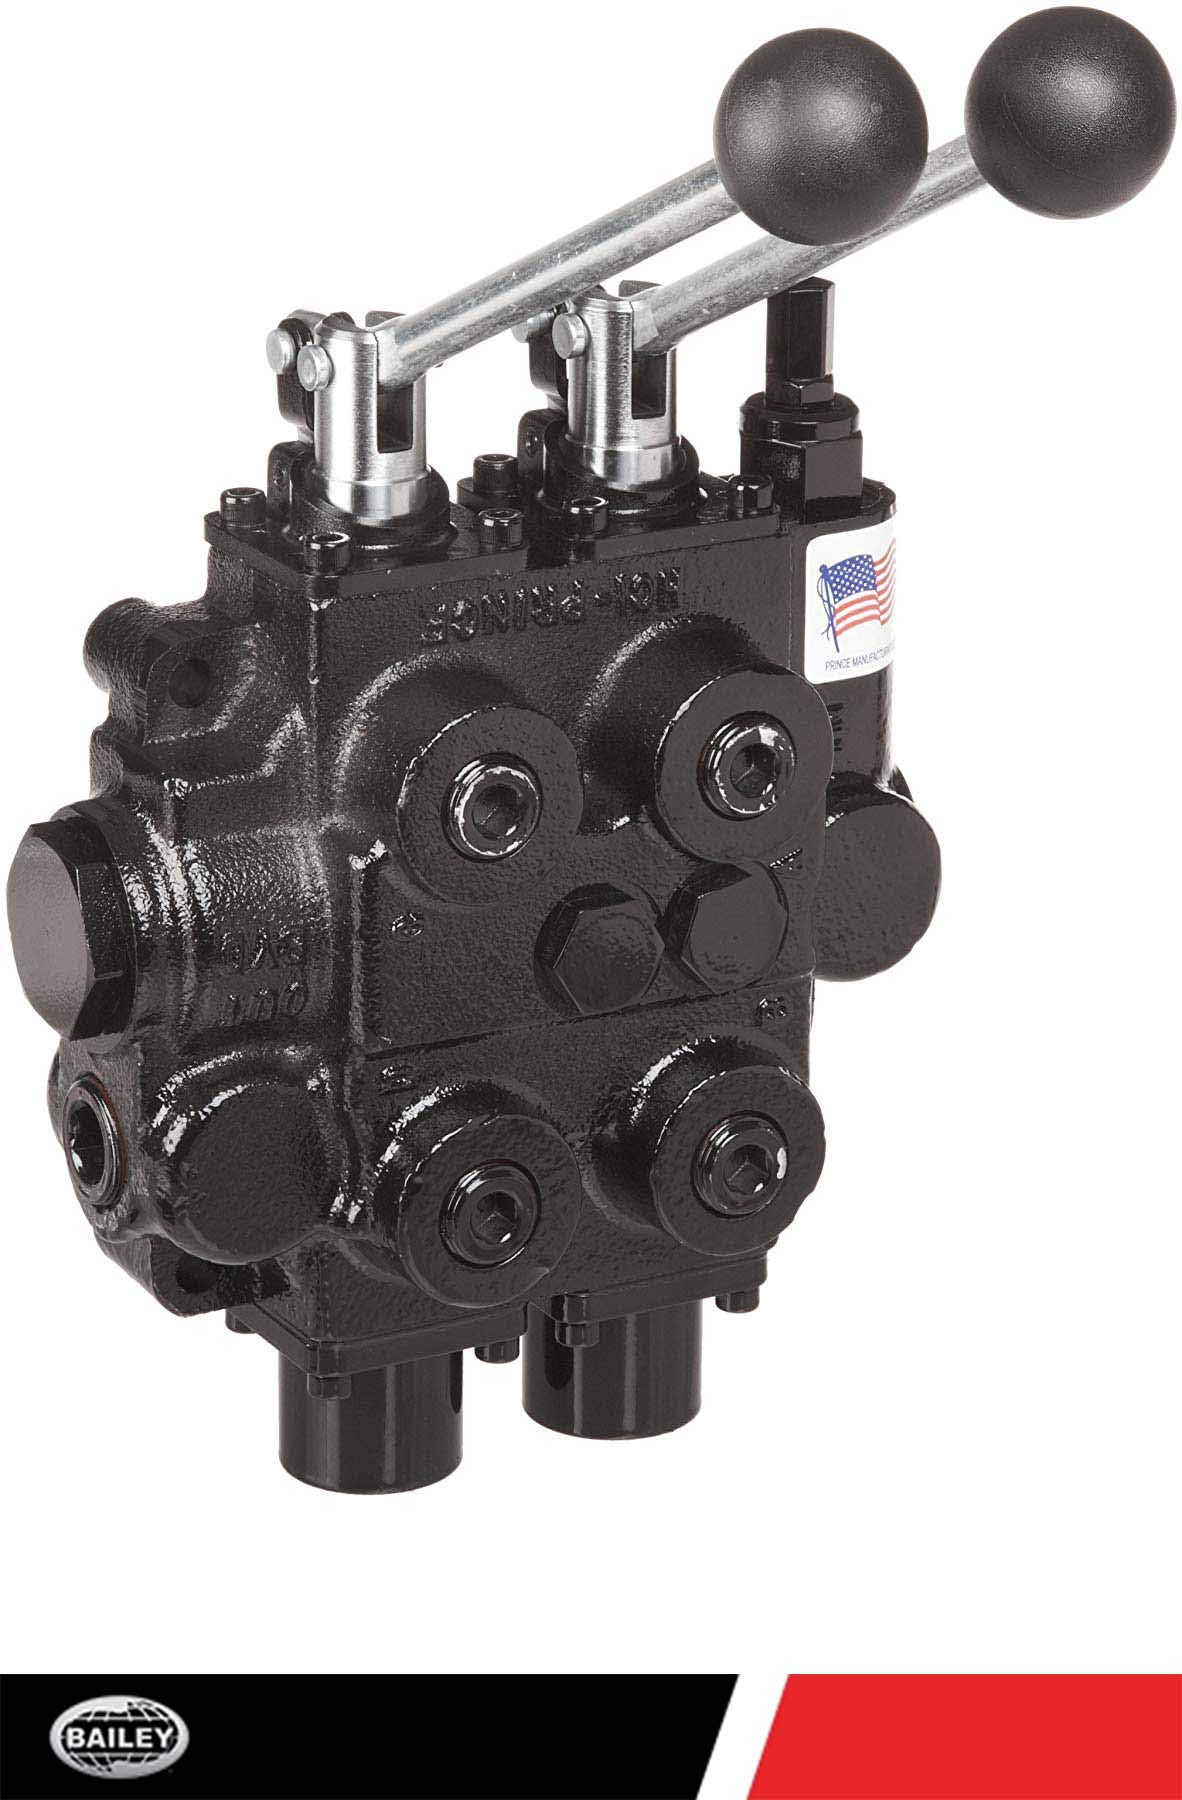 Prince RD522CCAA5A4B1 Directional Control Valve, Two Spool, 4 Ways, 3 Positions, Tandem Center, Cast Iron, 3000 psi, Lever Handle, 25 gpm, In/Out: 3/4'' NPTF, Work 1/2'' NPTF